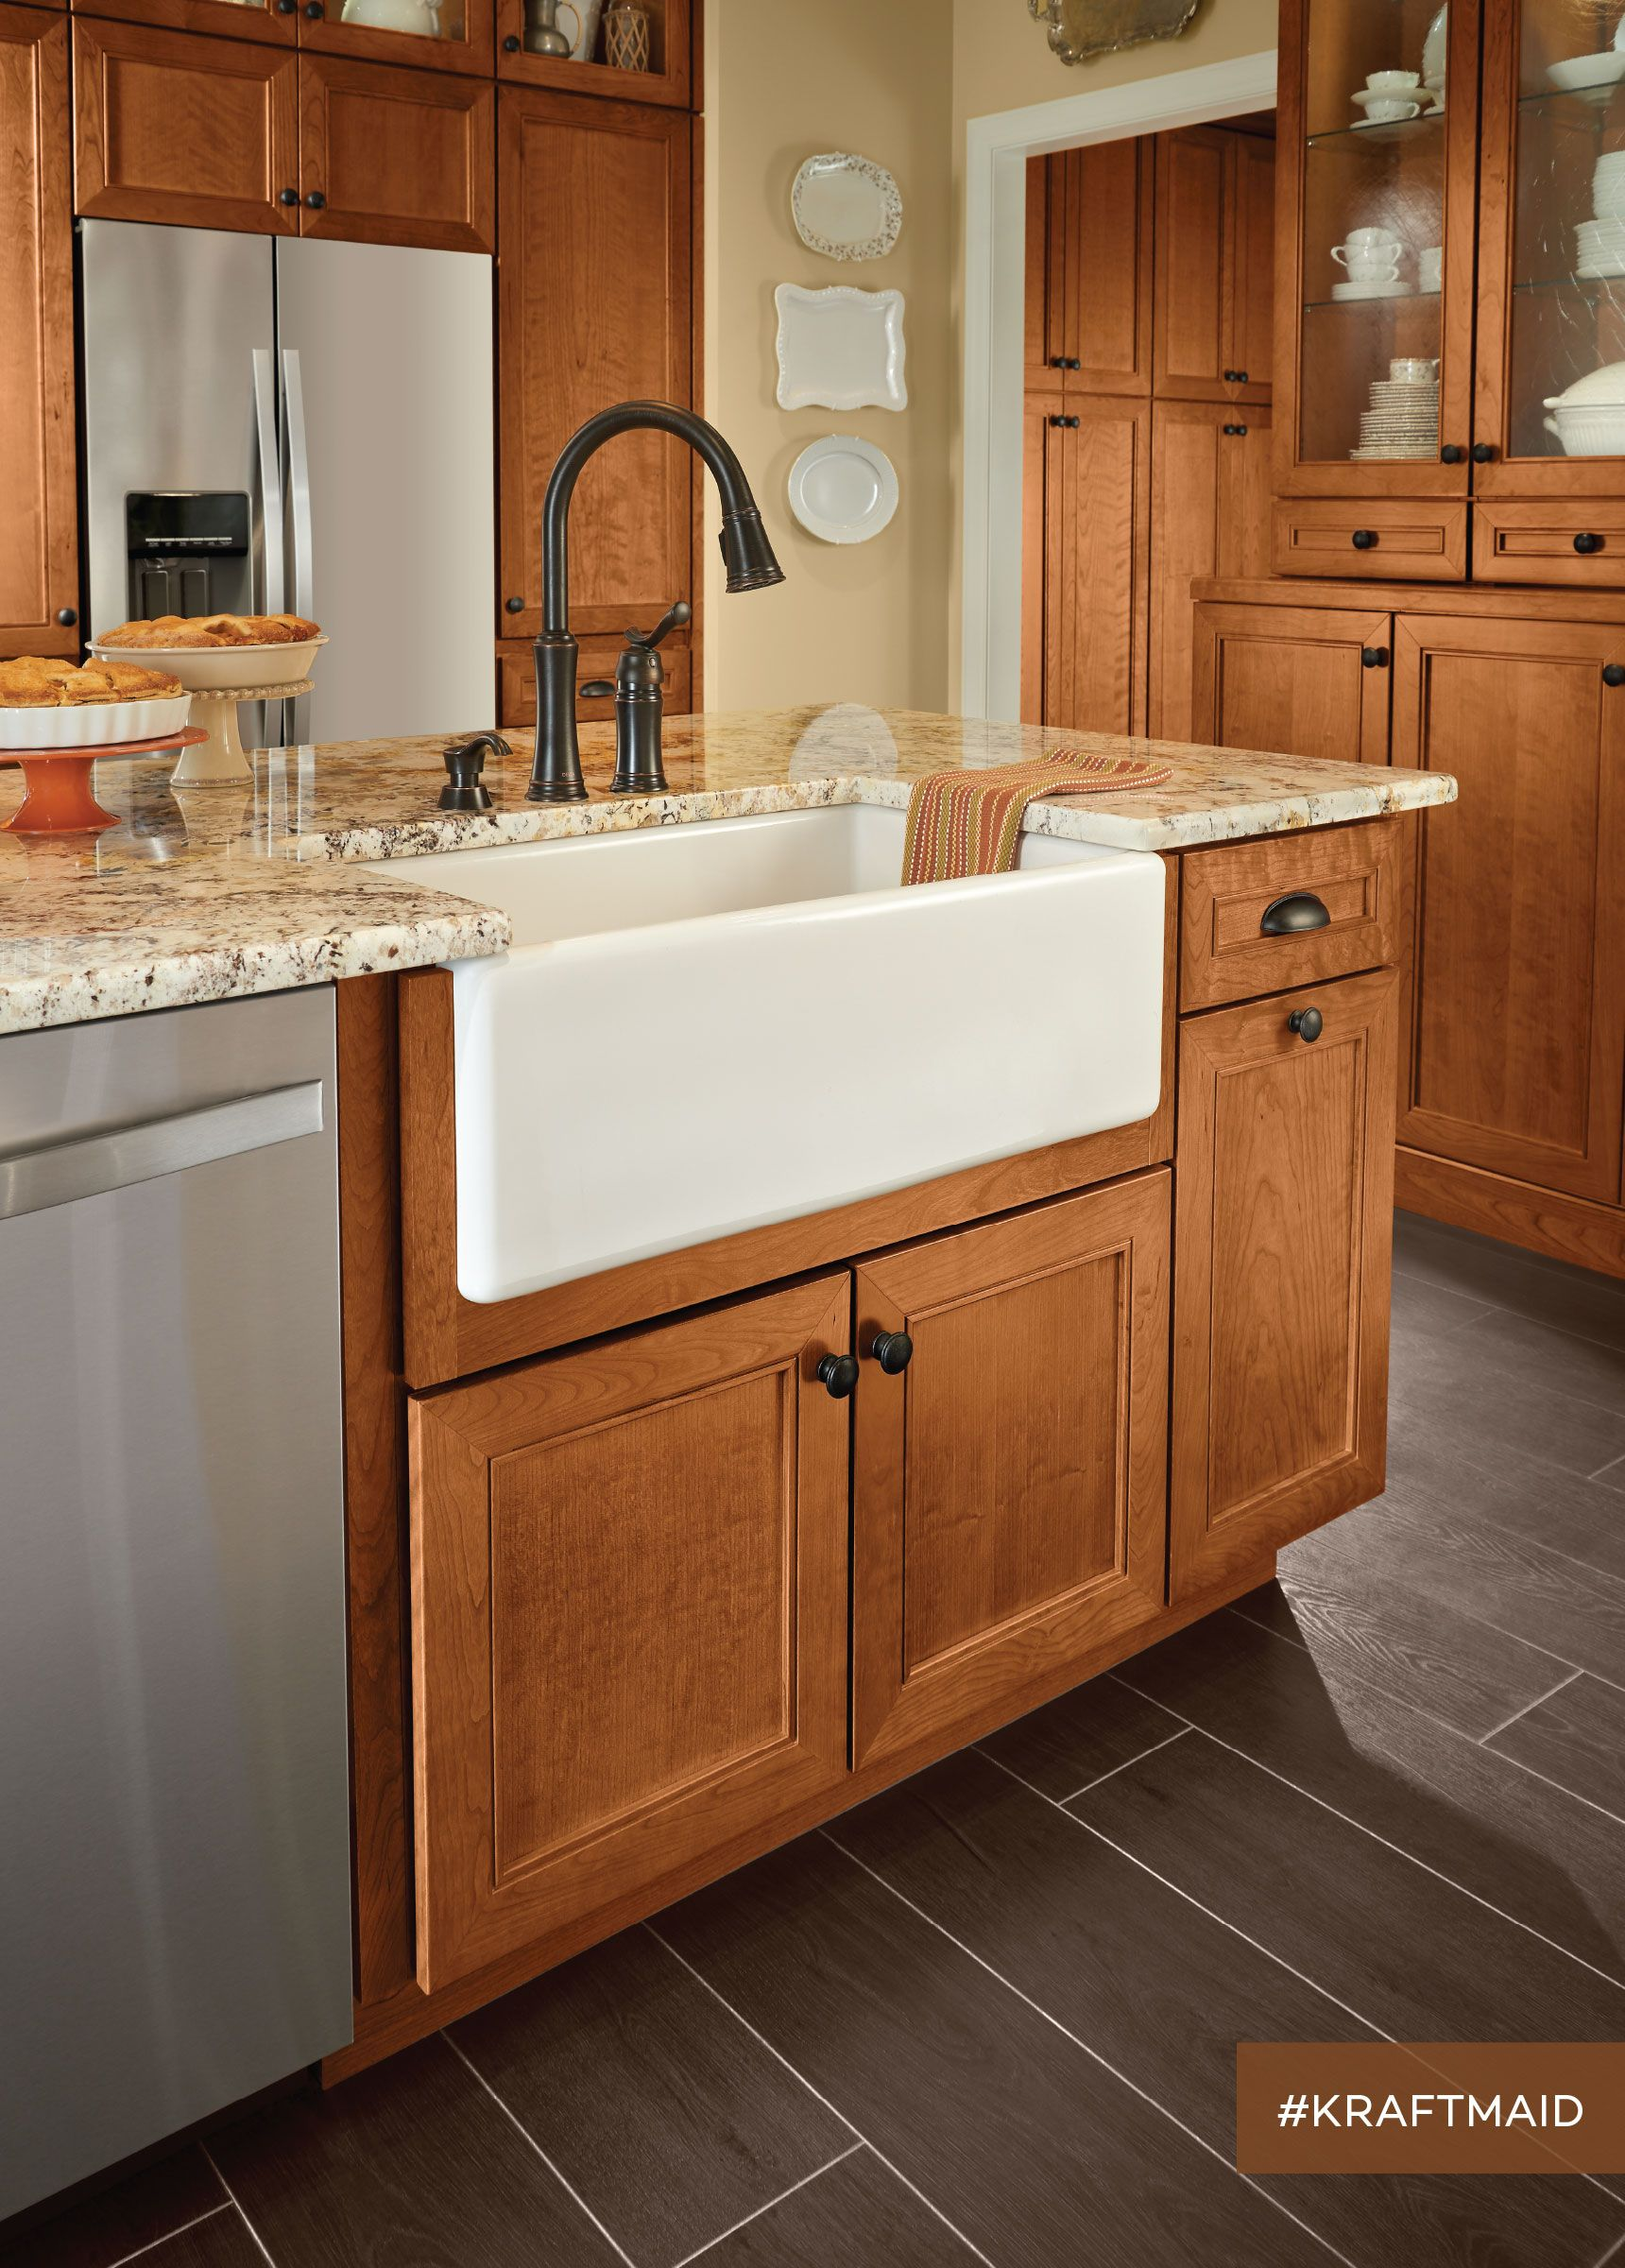 An Apron Front Sink Base Is Just One Example Of The Many Kitchen Sink Base Options Available From Kraf Kitchen Cabinet Design Kraftmaid Kitchen And Bath Design